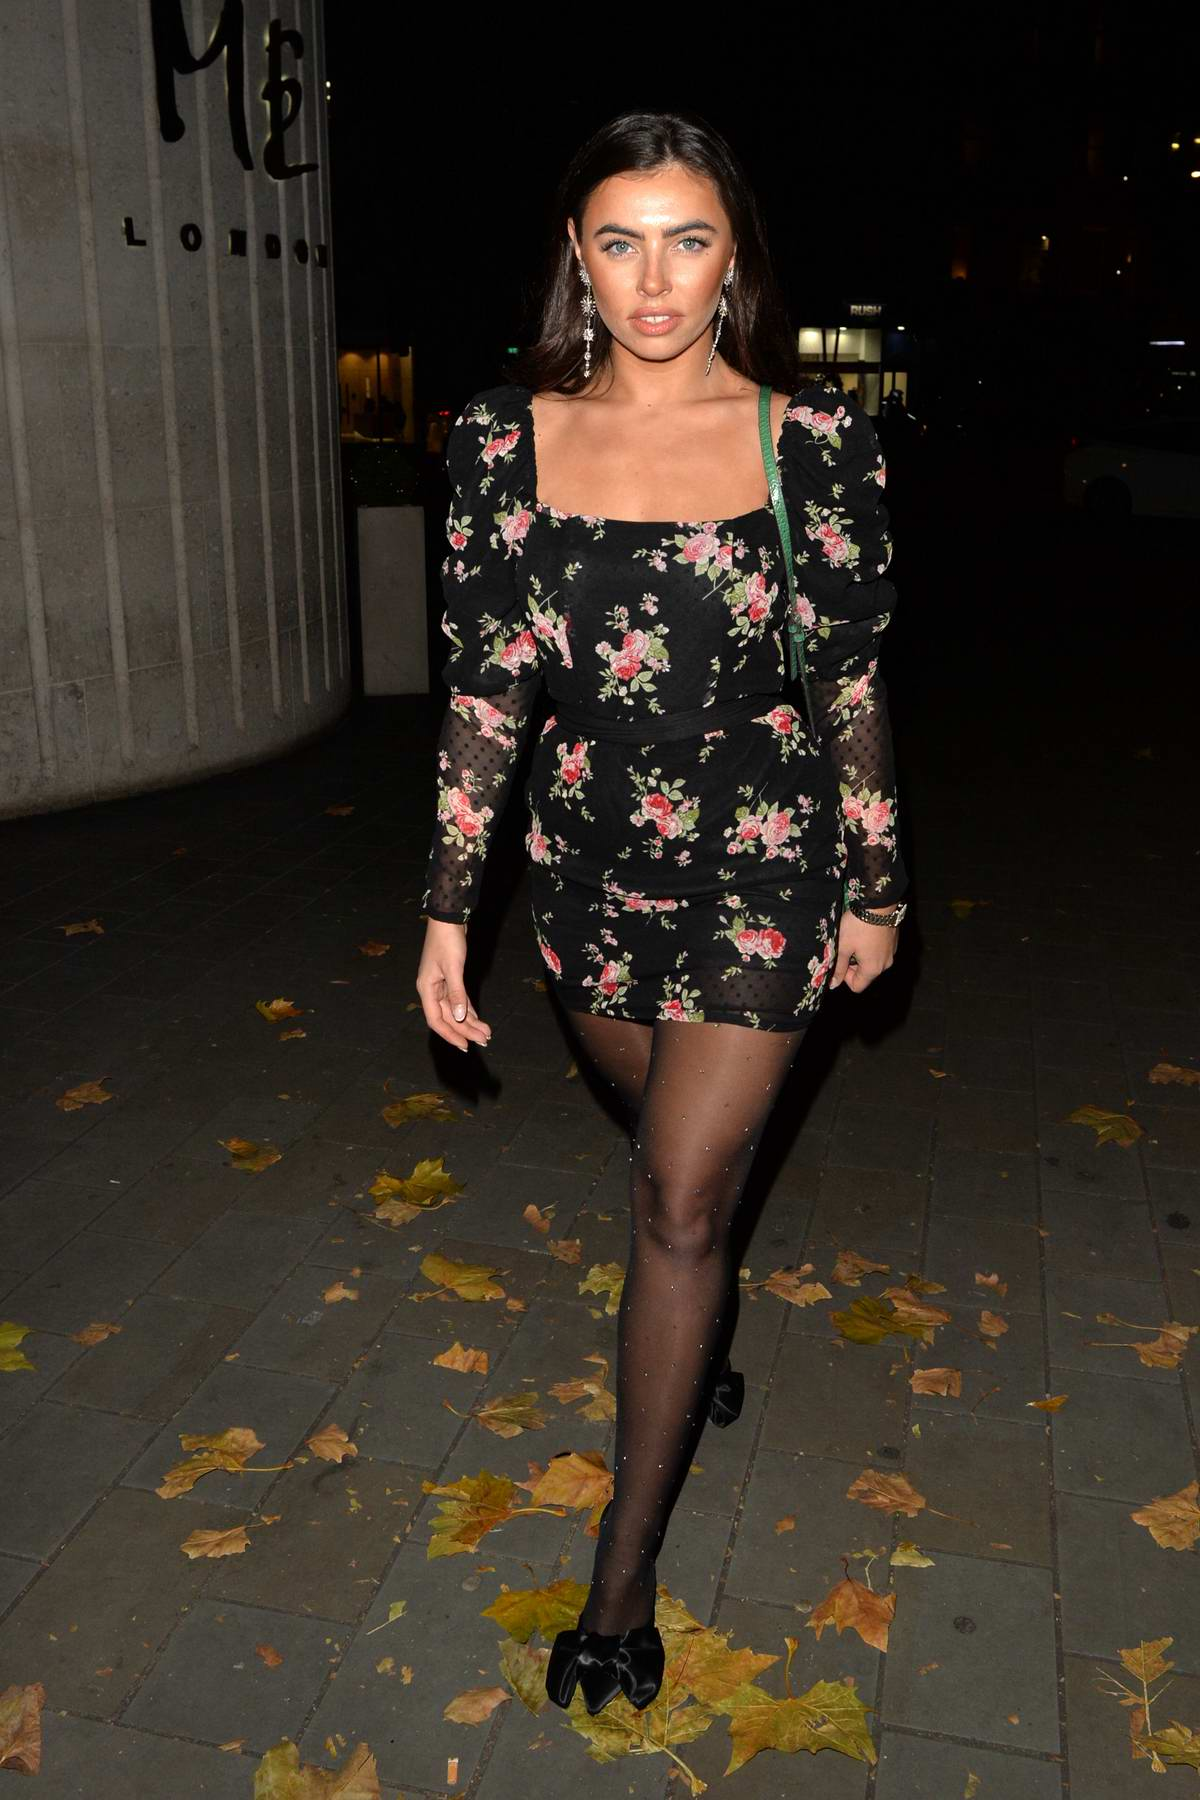 Francesca Allen wears a floral print black mini dress during a night out with friends at STK in London, UK